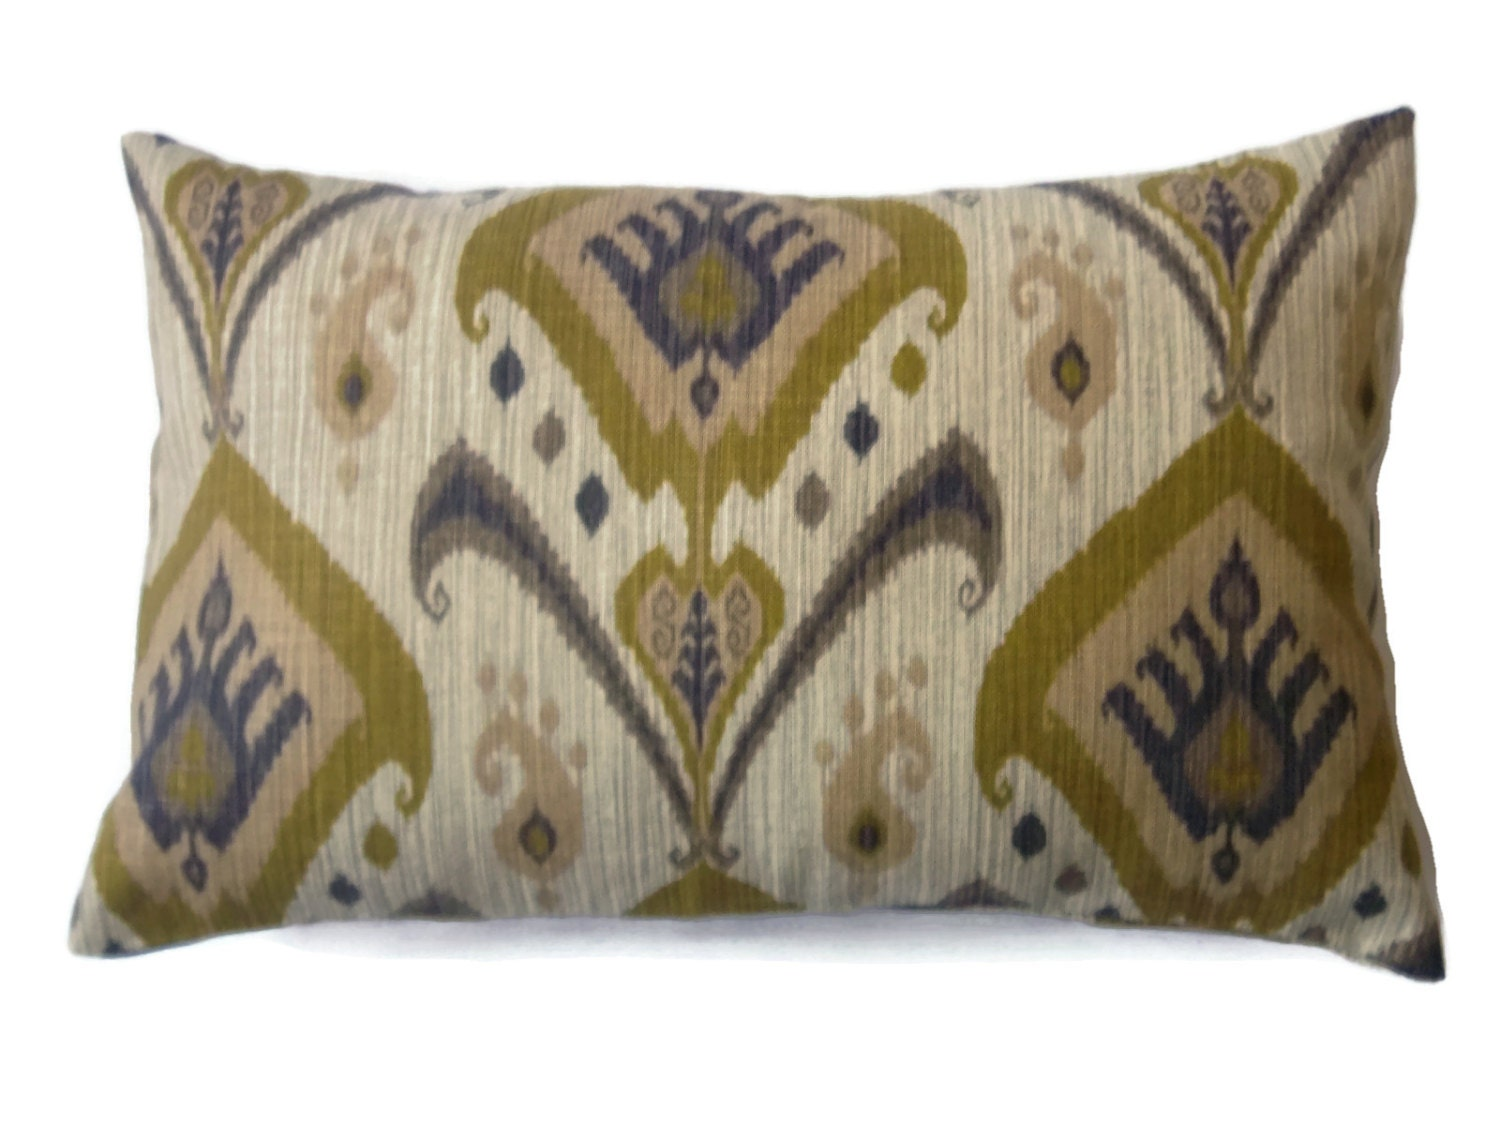 Decorative Lumbar Pillows Green : Decorative Lumbar Pillow Cover Olive Green Taupe Brown Same